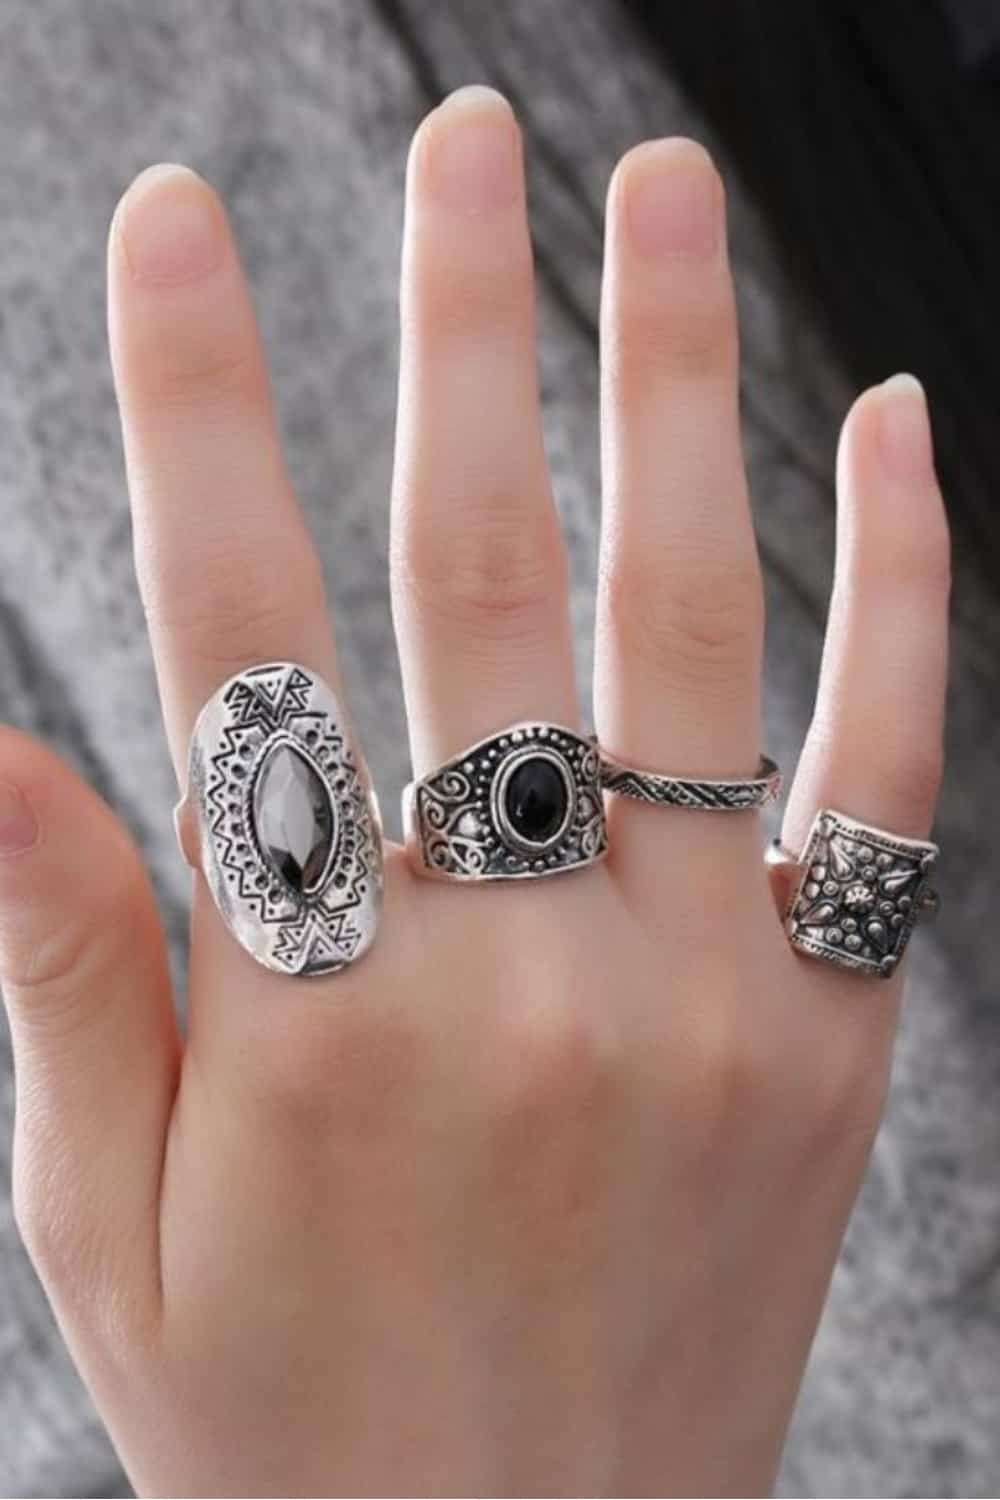 Midi Ring Shapes and Styles